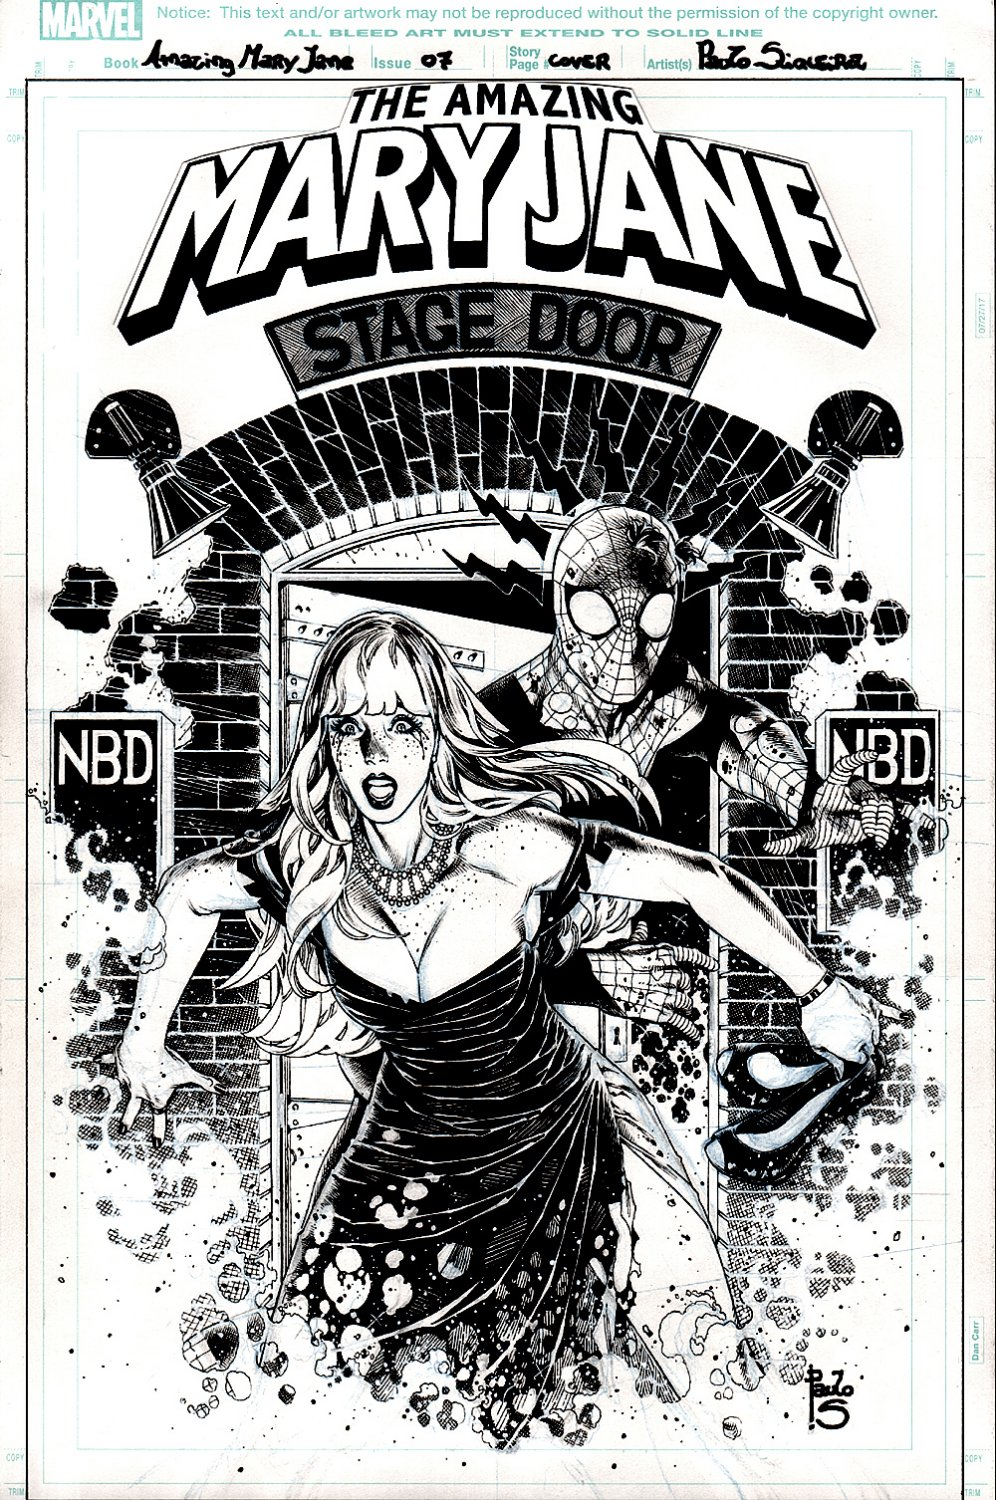 Amazing Mary Jane #7 Cover (SUPER SEXY MJ & SPIDER-MAN!) 2019